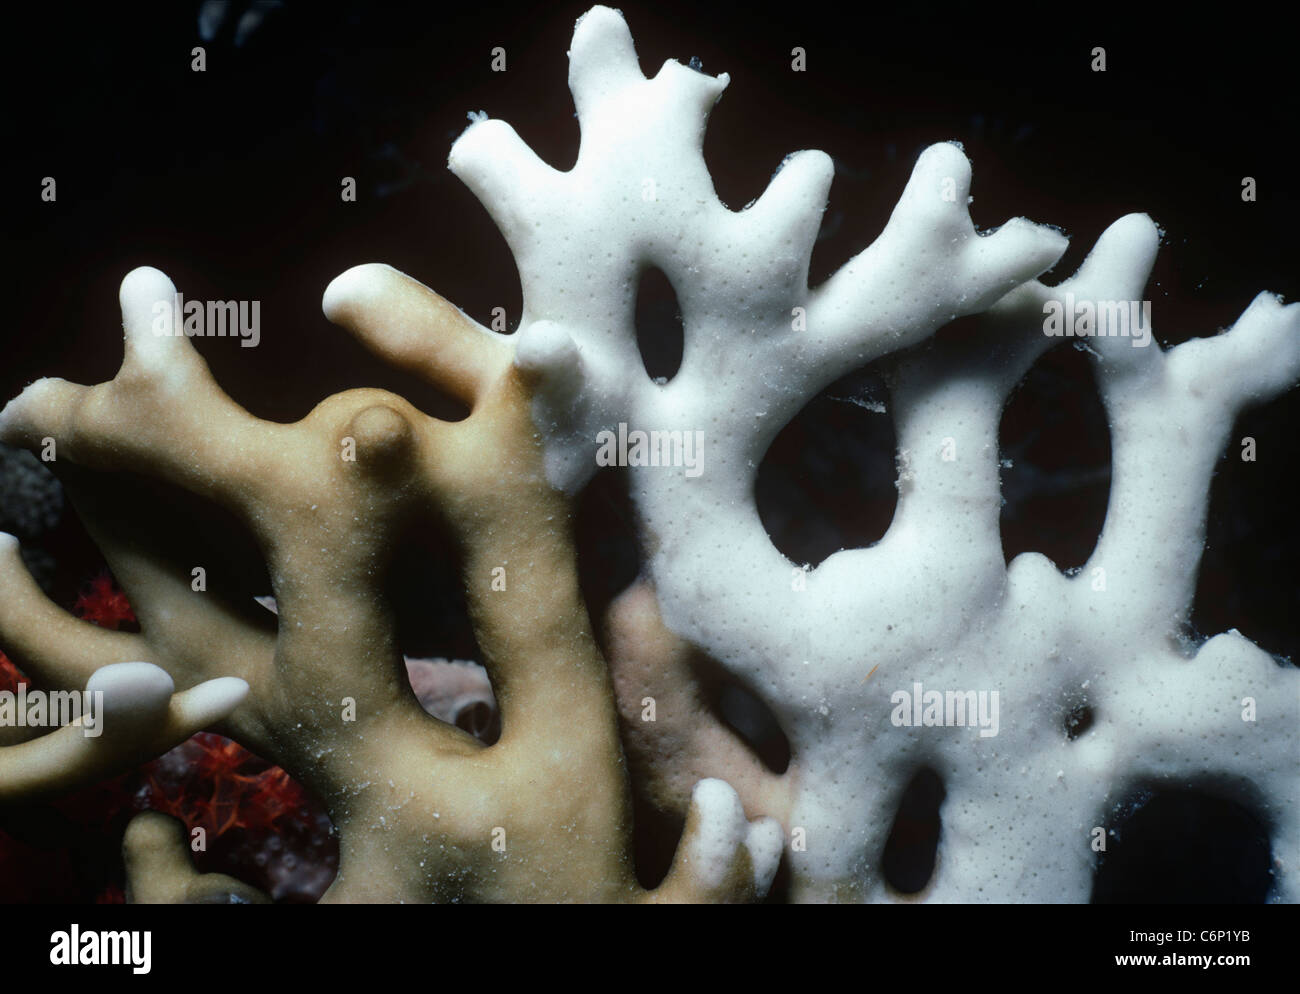 Coral Bleaching: Ramified Fire Coral (Millepora tenella) beginning to bleach. Egypt, Red Sea Stock Photo